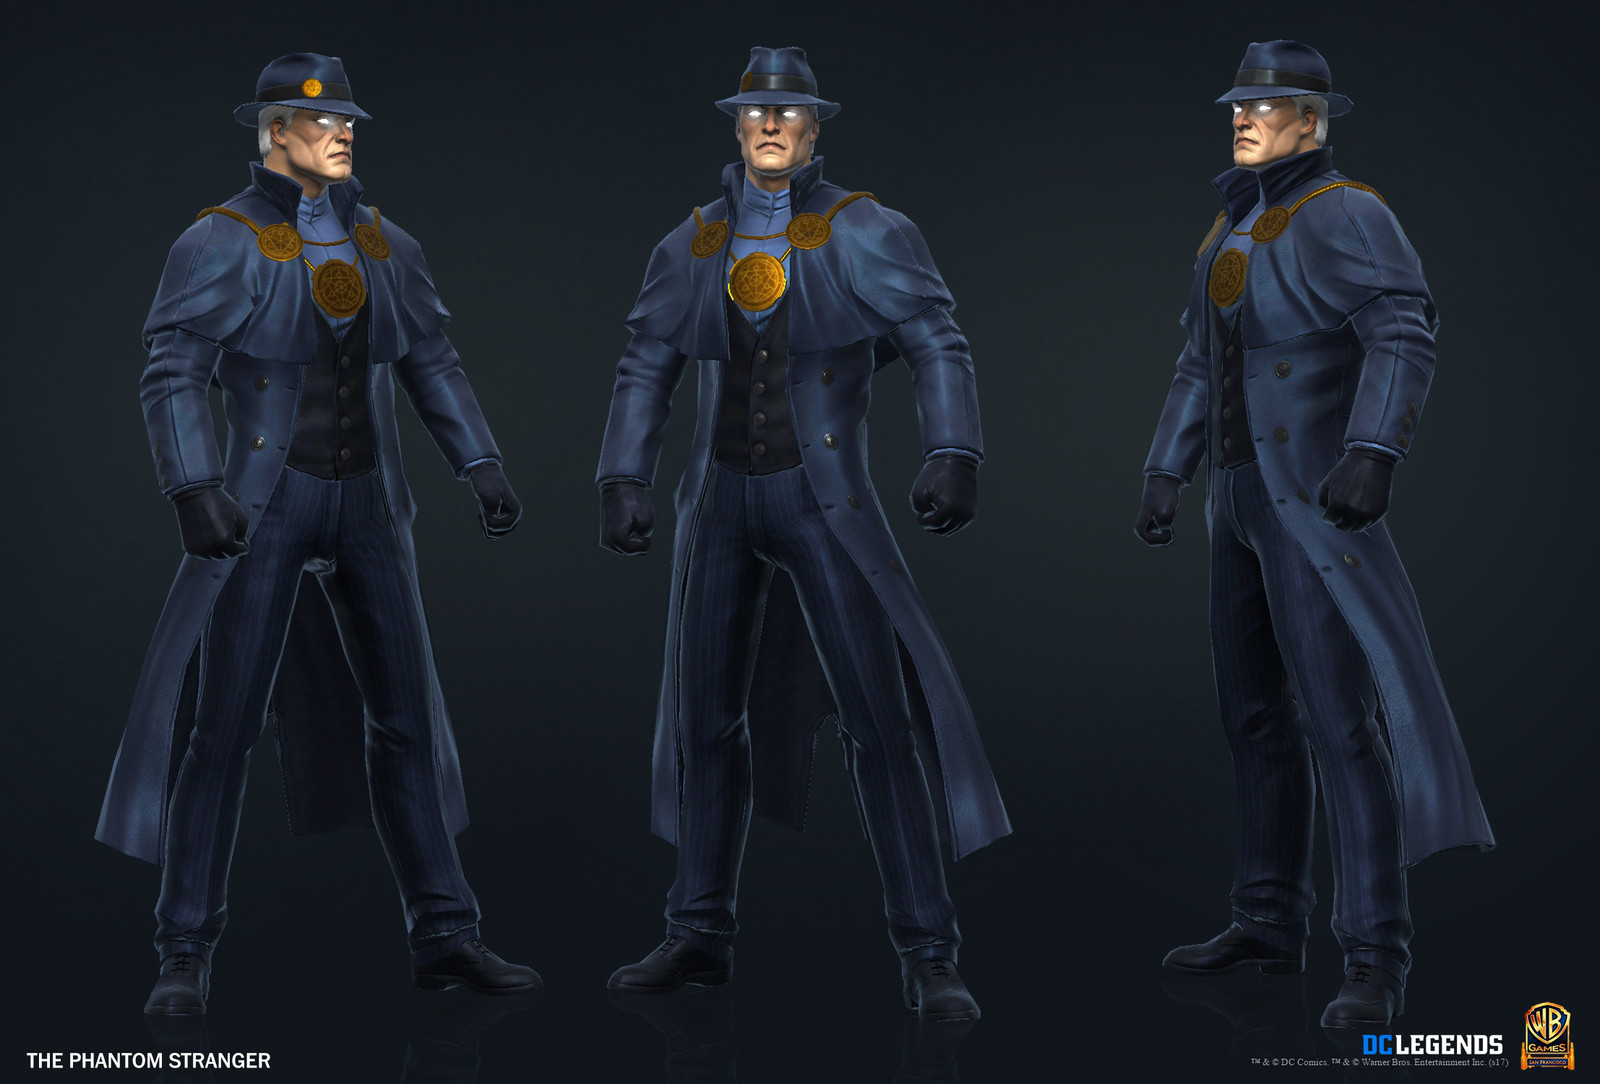 The Phantom Stranger High Poly, Low Poly and Textures/Material work done by me. Additional Texture/Material pass done by Josiah Martinez.